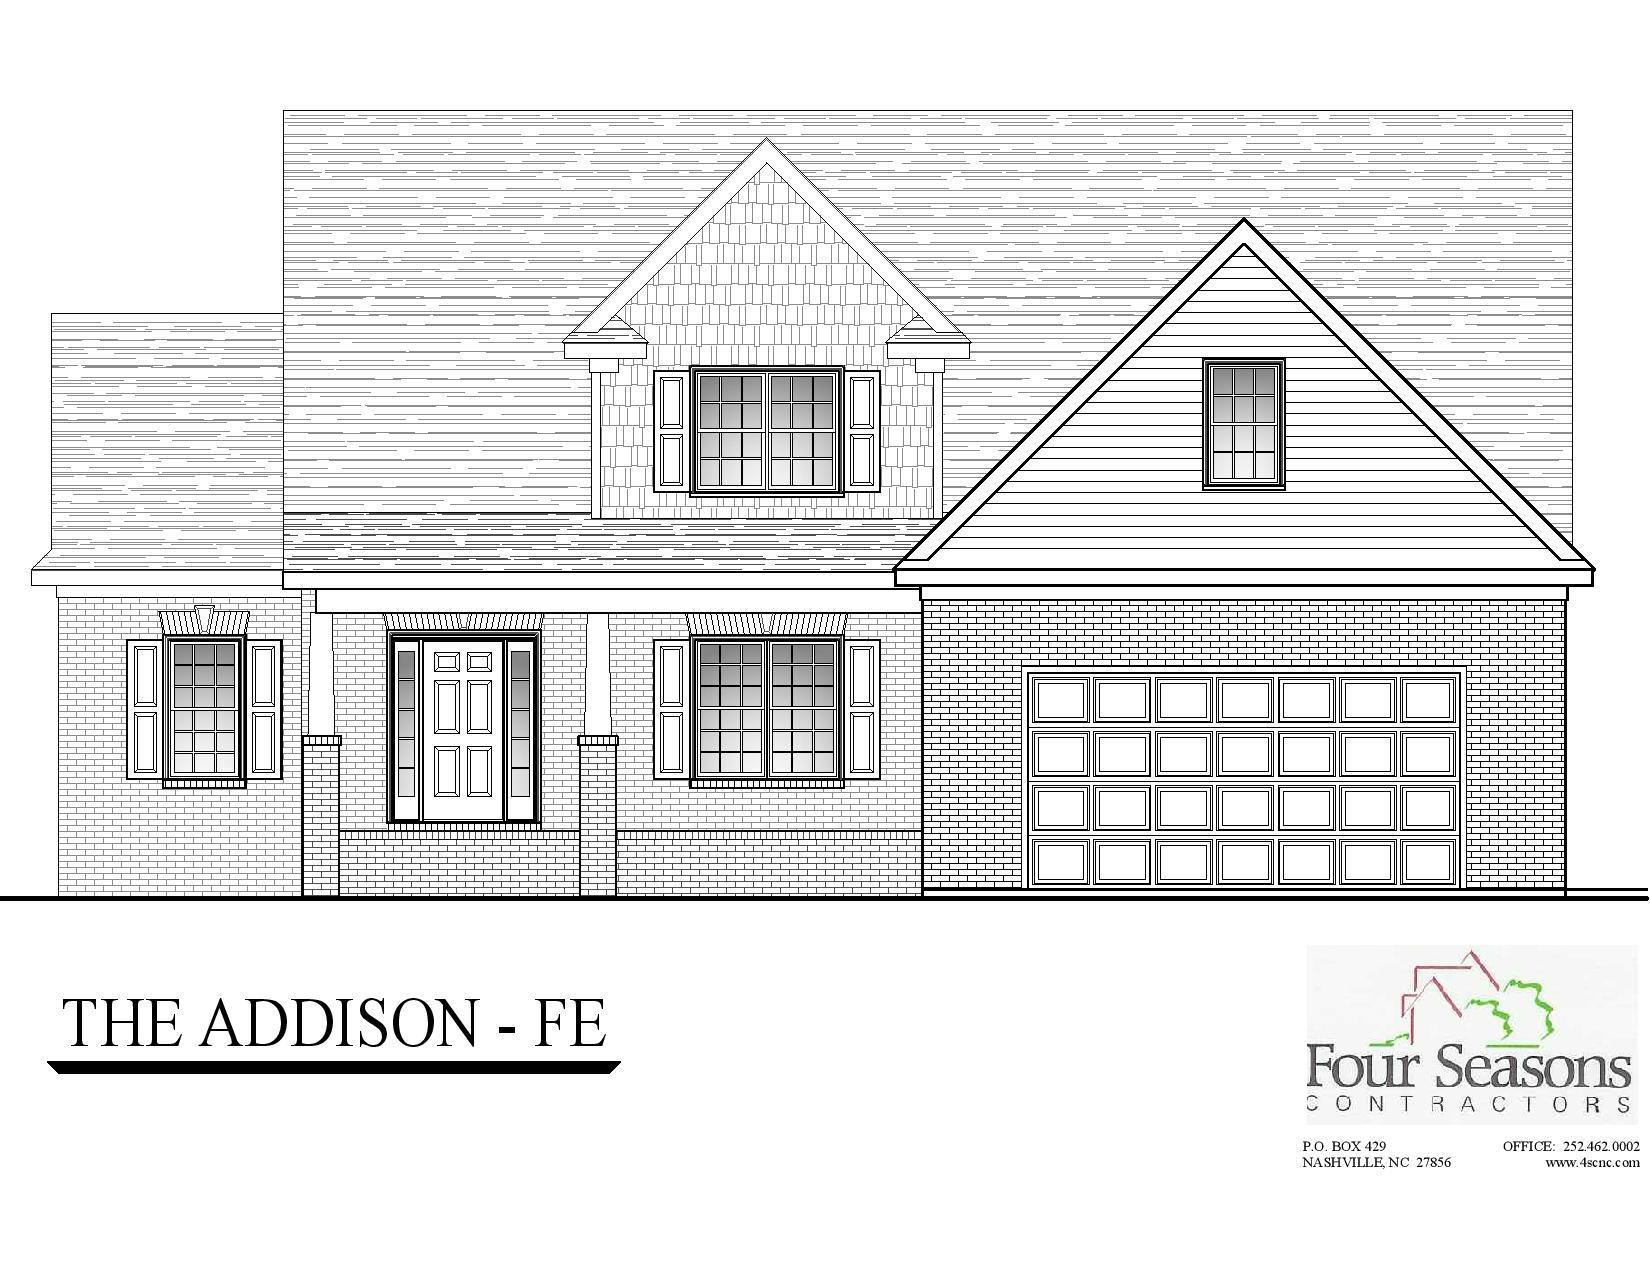 Exterior featured in The Addison FE 2.5 By Four Seasons Contractors in Rocky Mount, NC